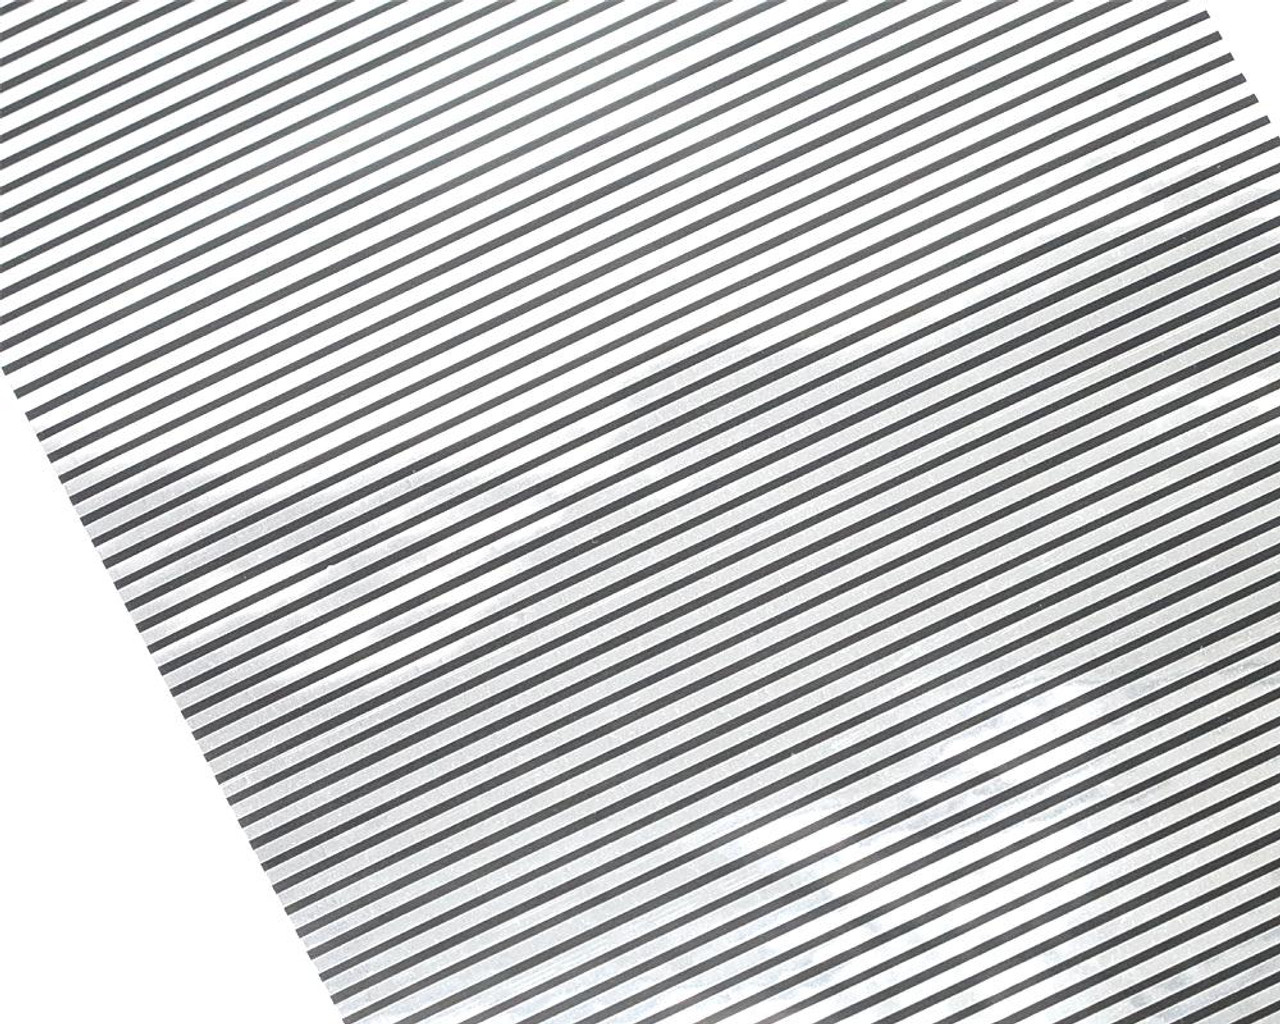 Striped Ashtray Decal